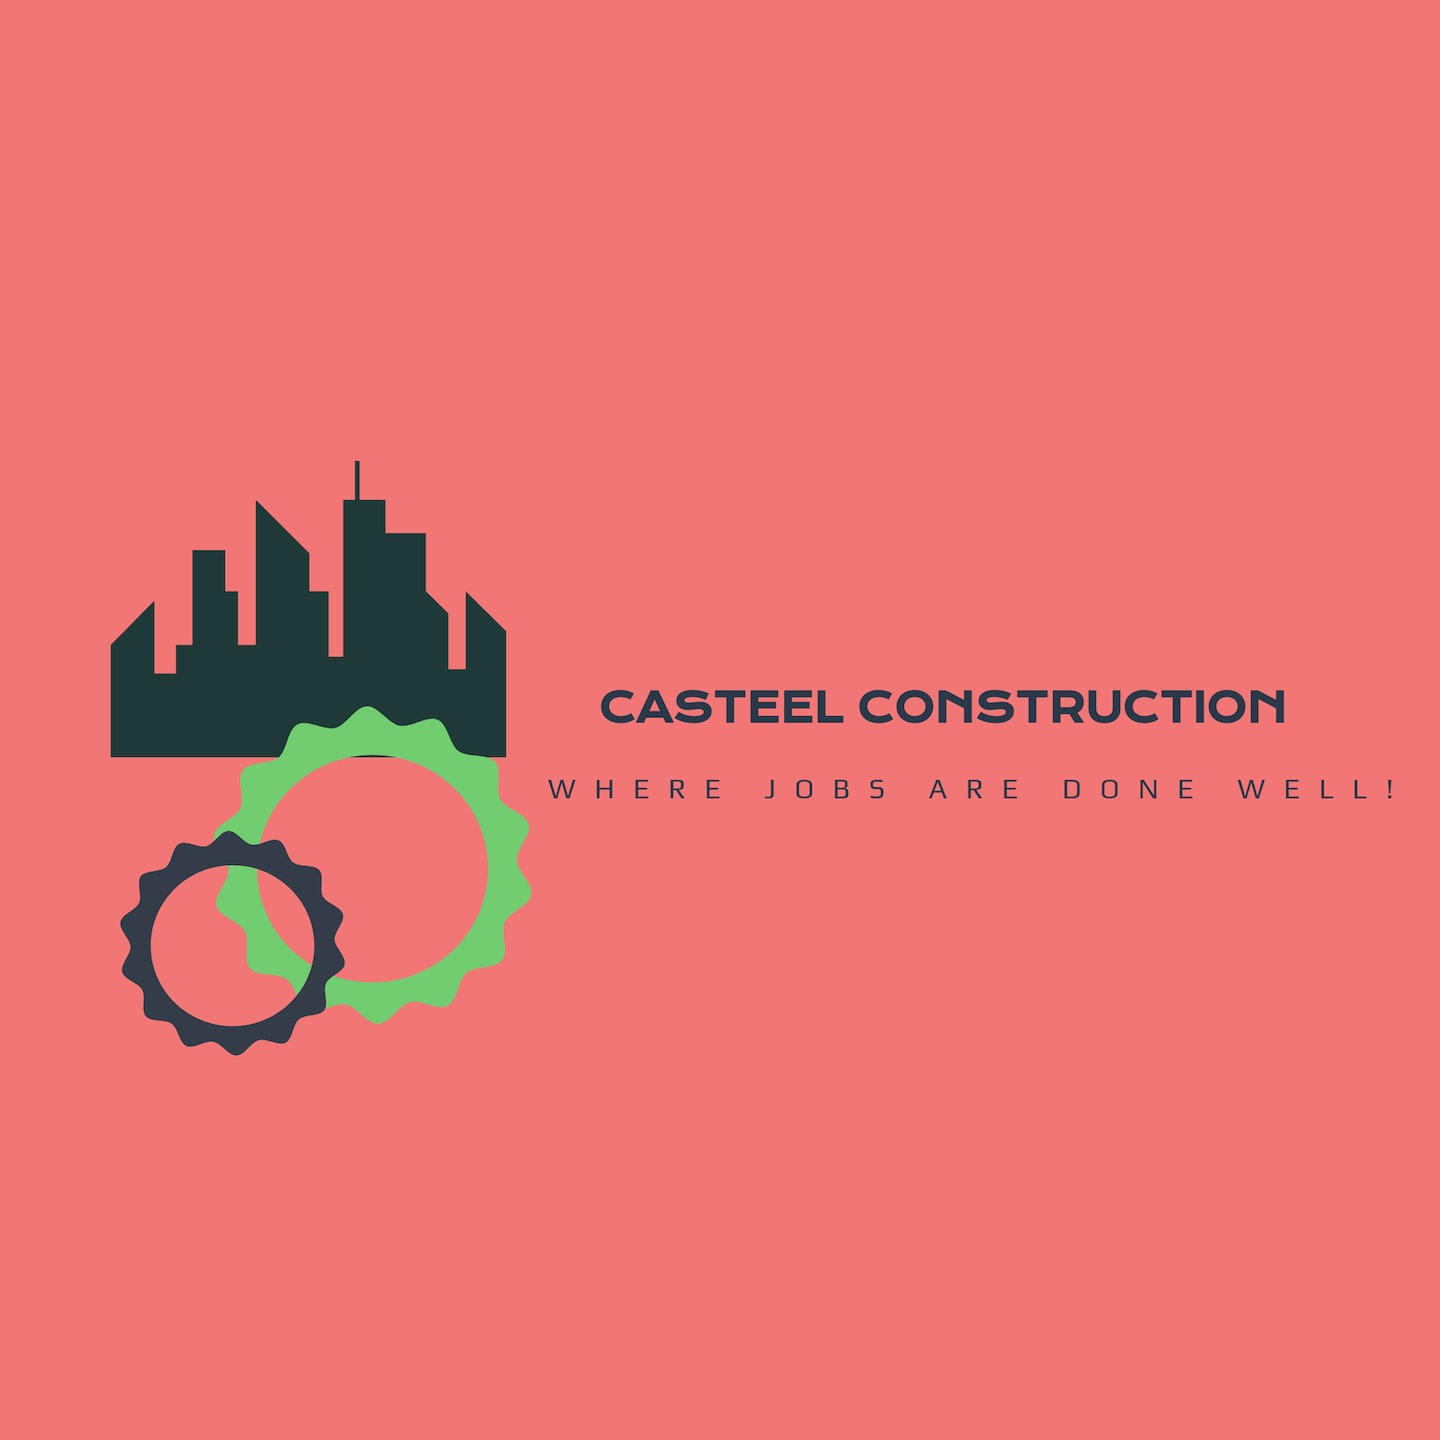 Casteel construction